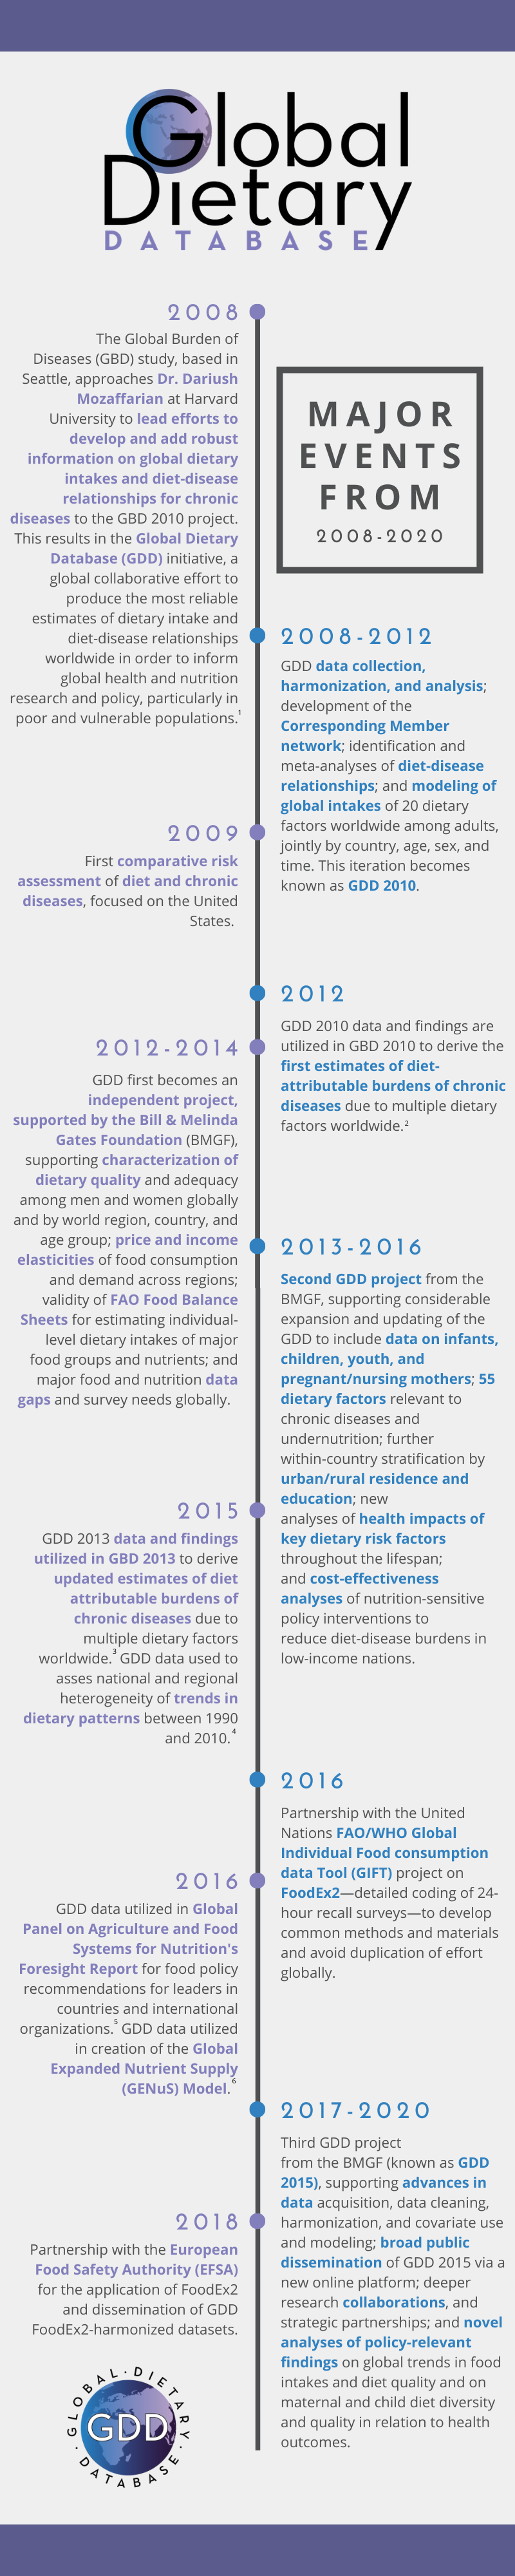 GDD timeline of major events, 2008-2020